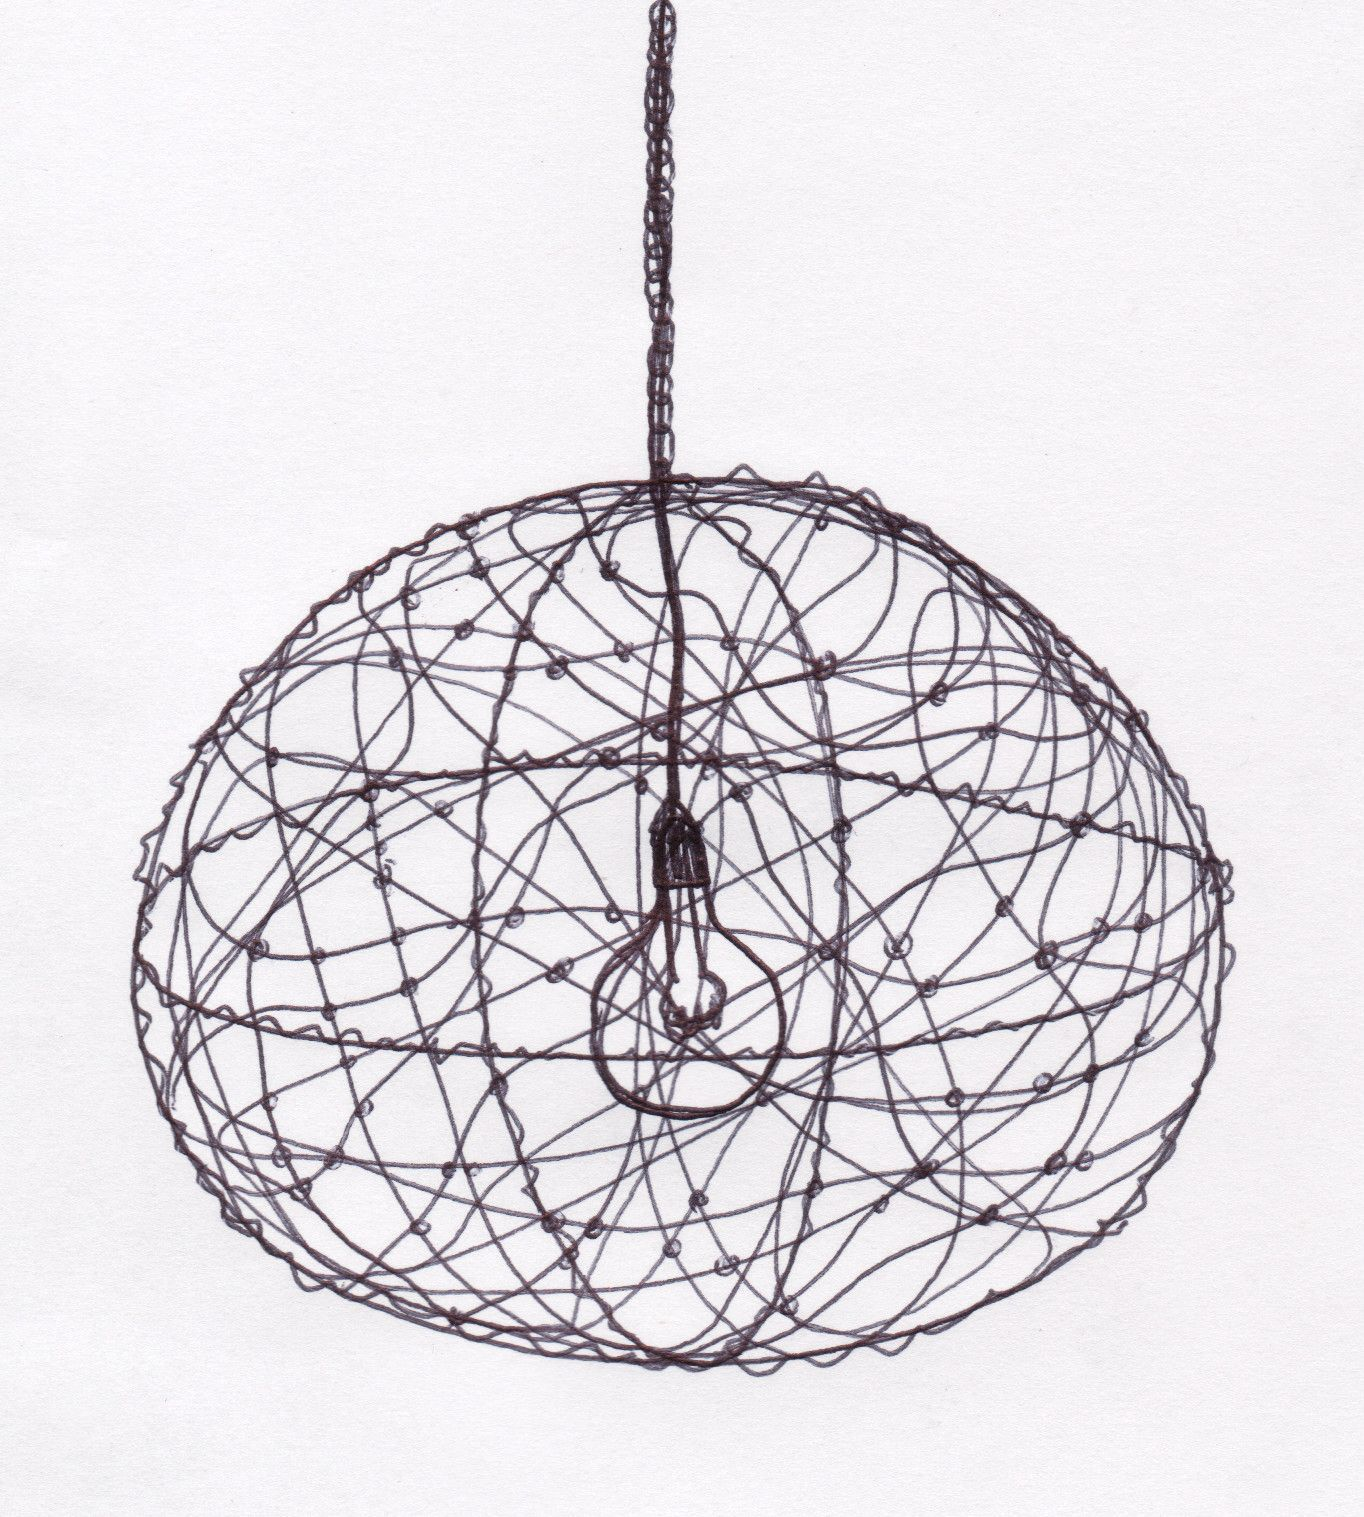 Diy for this beautiful wire lampshade bails pinterest wire diy for this beautiful wire lampshade keyboard keysfo Image collections